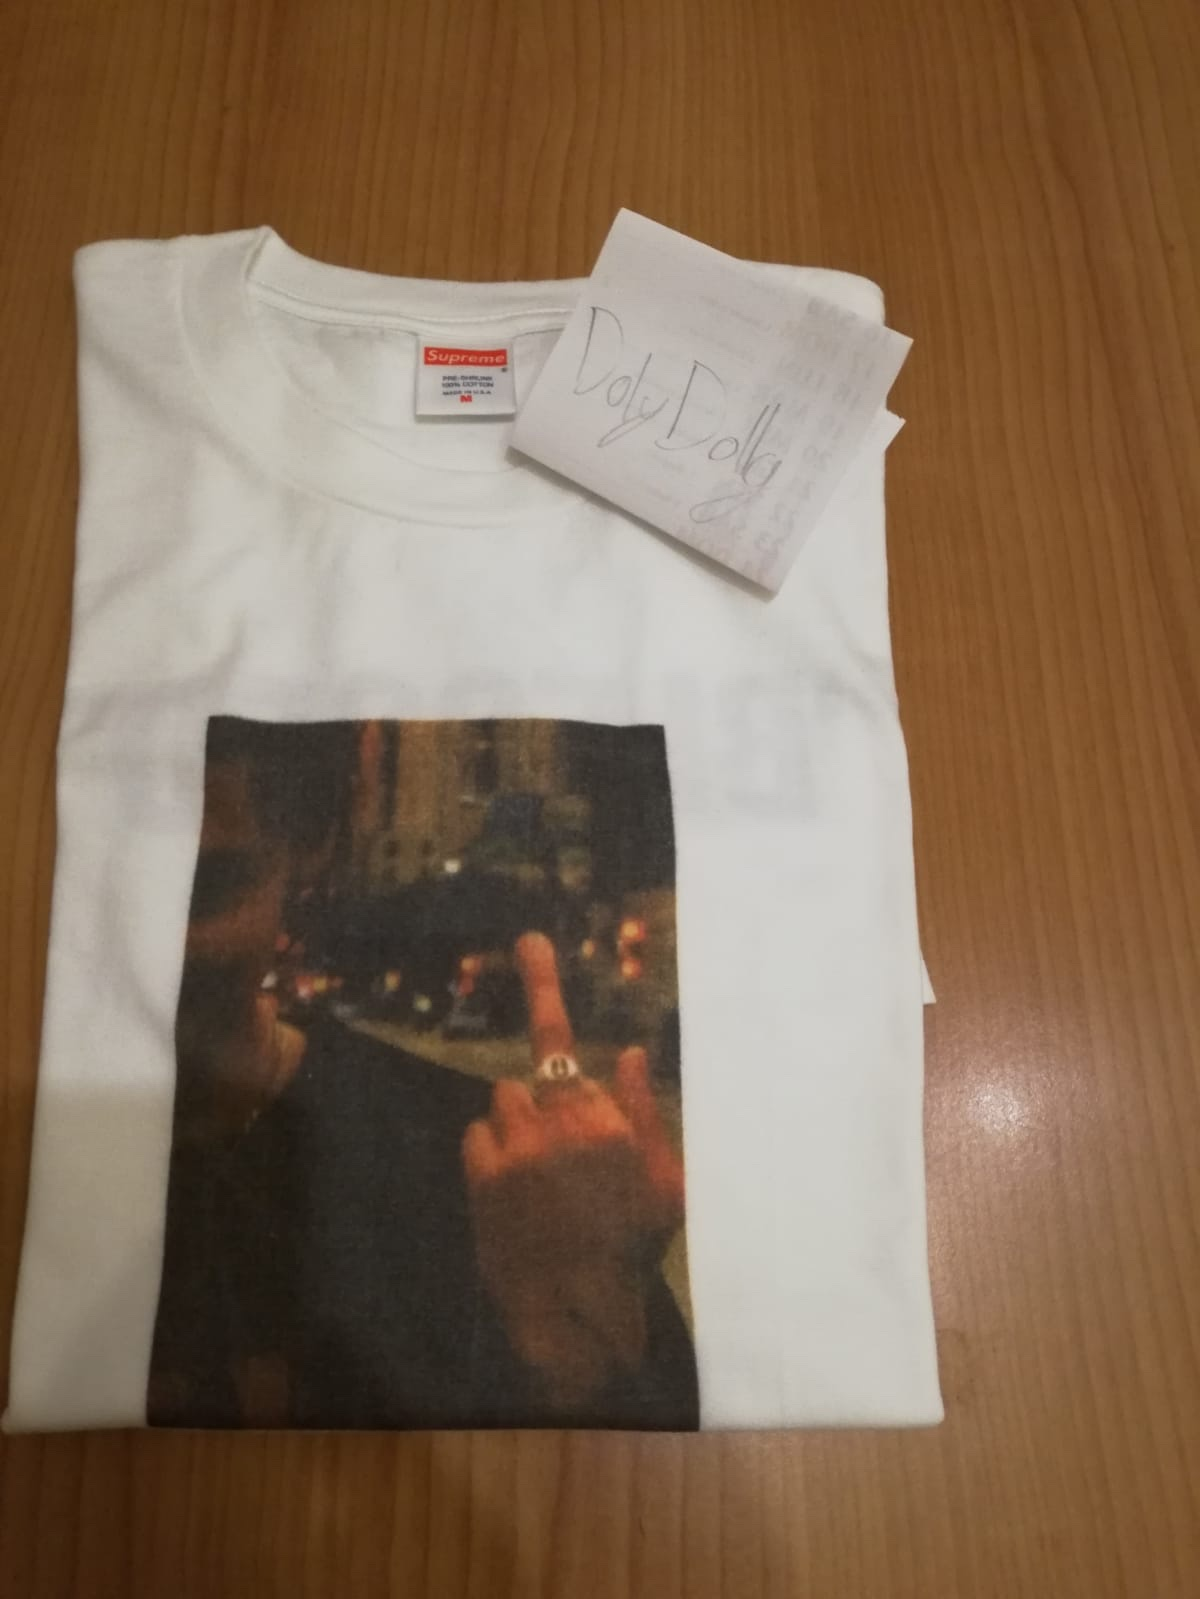 a445cacad0ff Wts supreme blessed tee fw18 - Meetapp